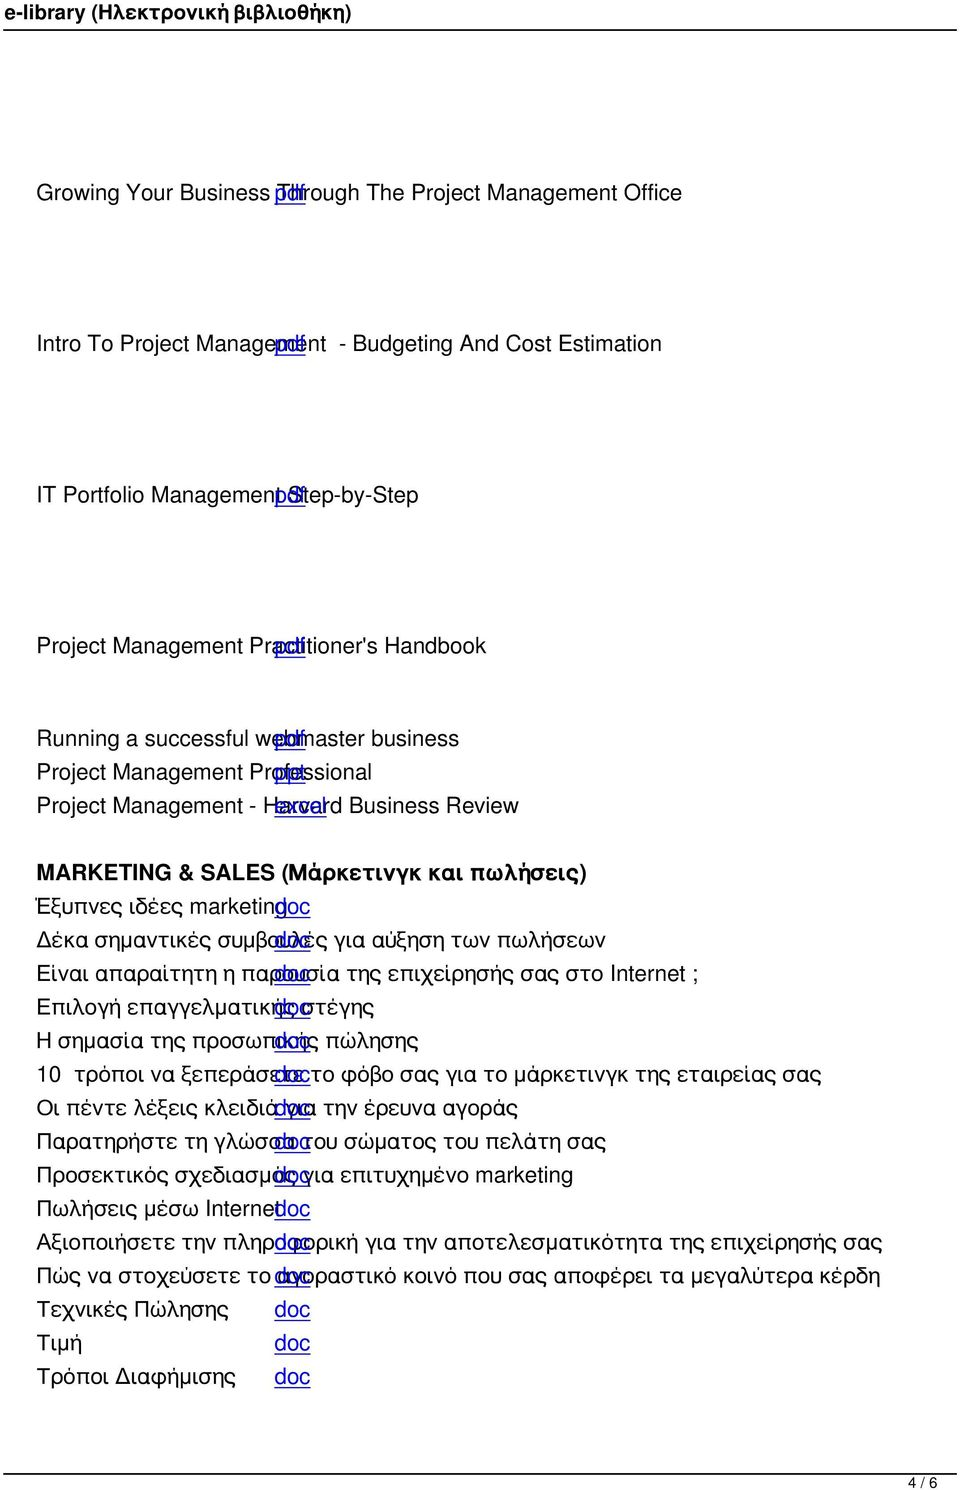 How to write a business plan mckinsey pdf